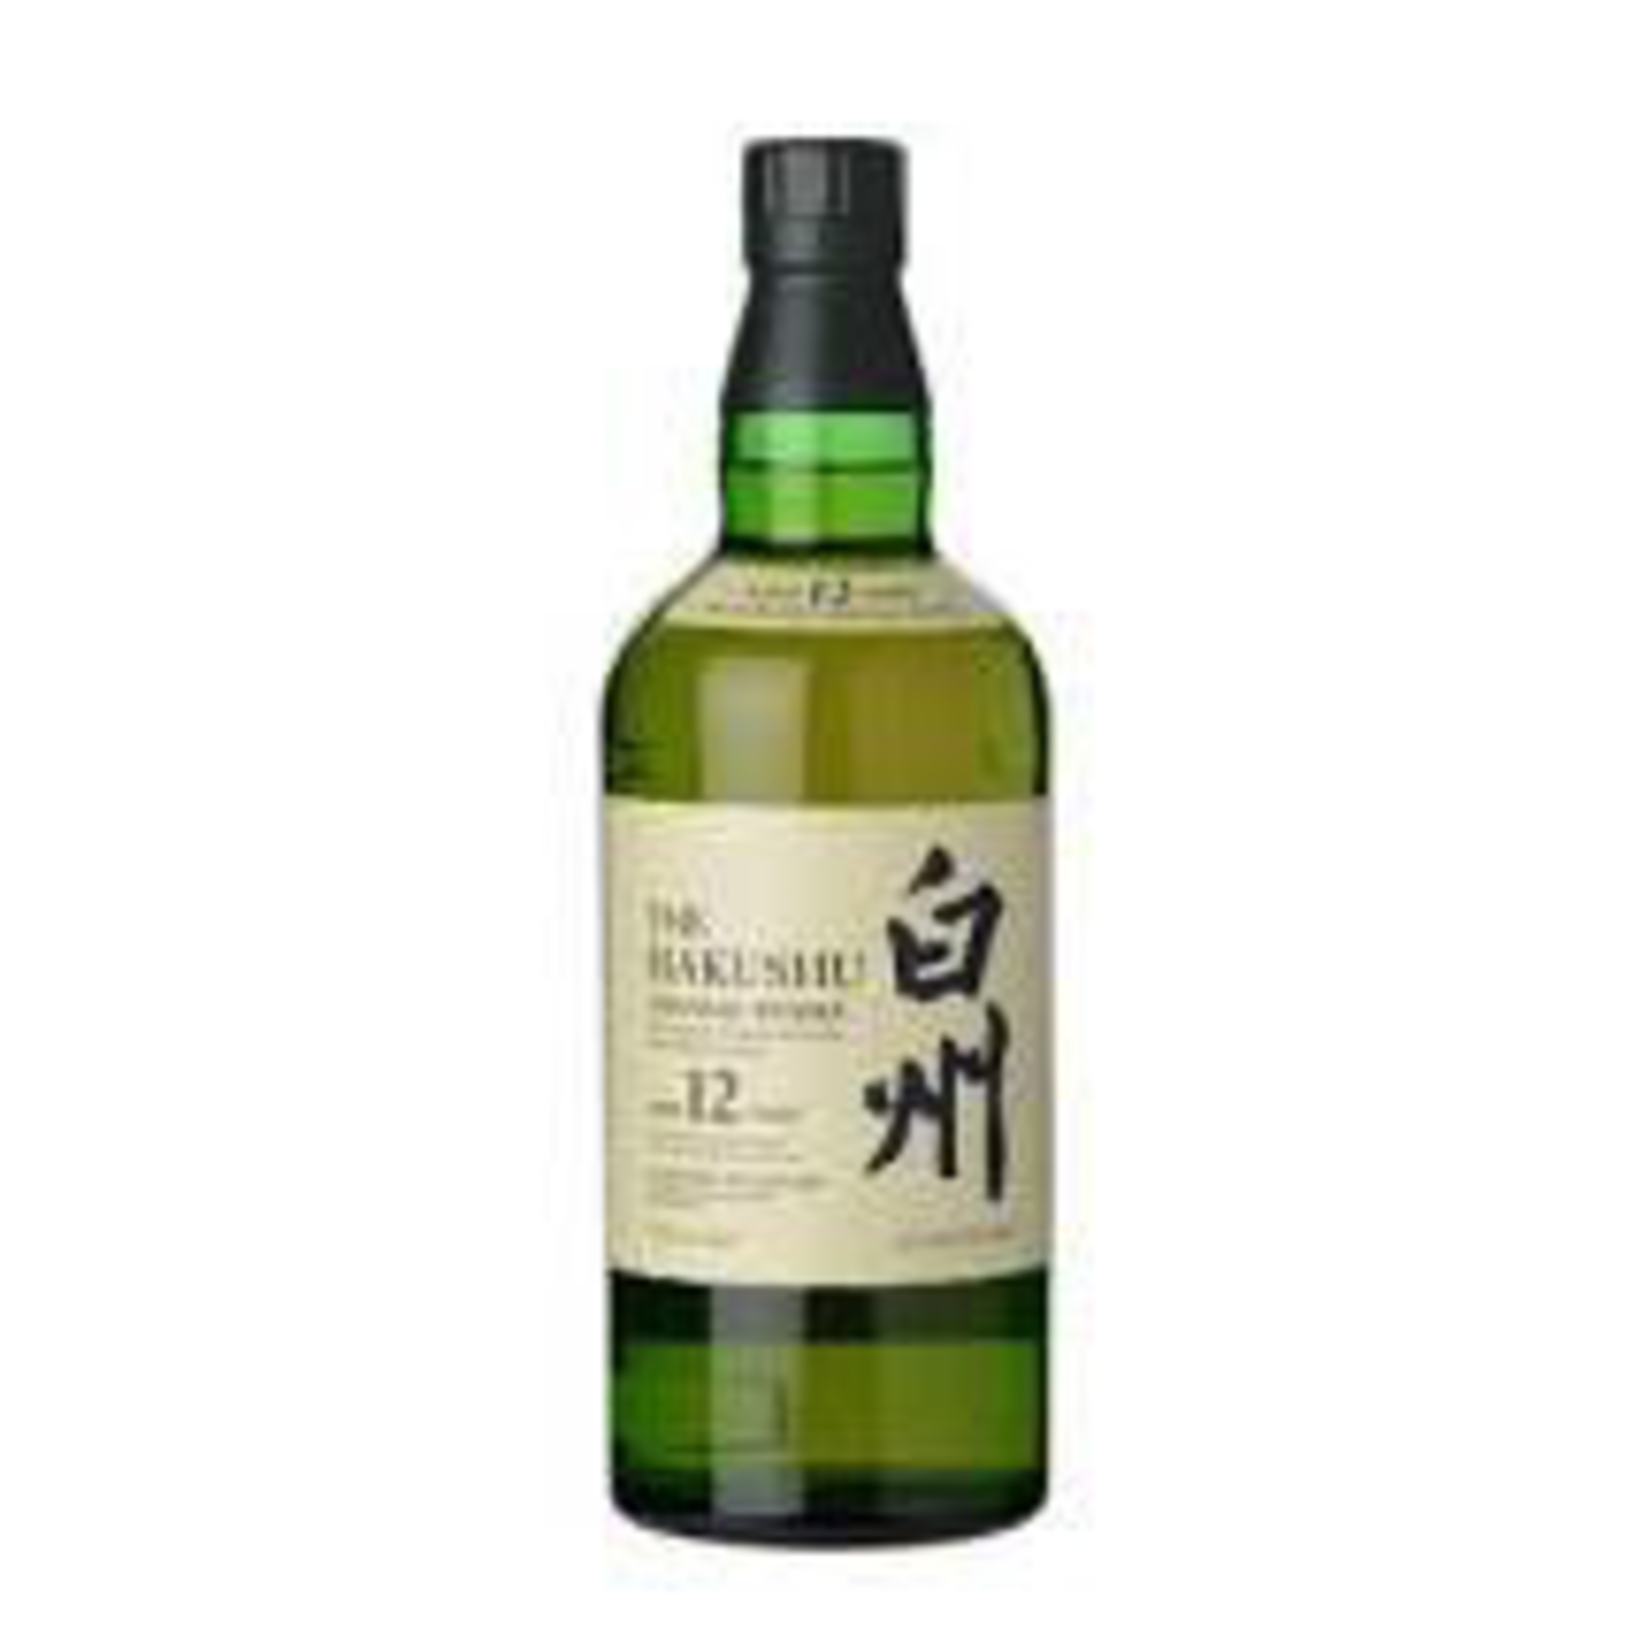 Spirits Suntory Hakushu Whisky Single Malt 12 Year